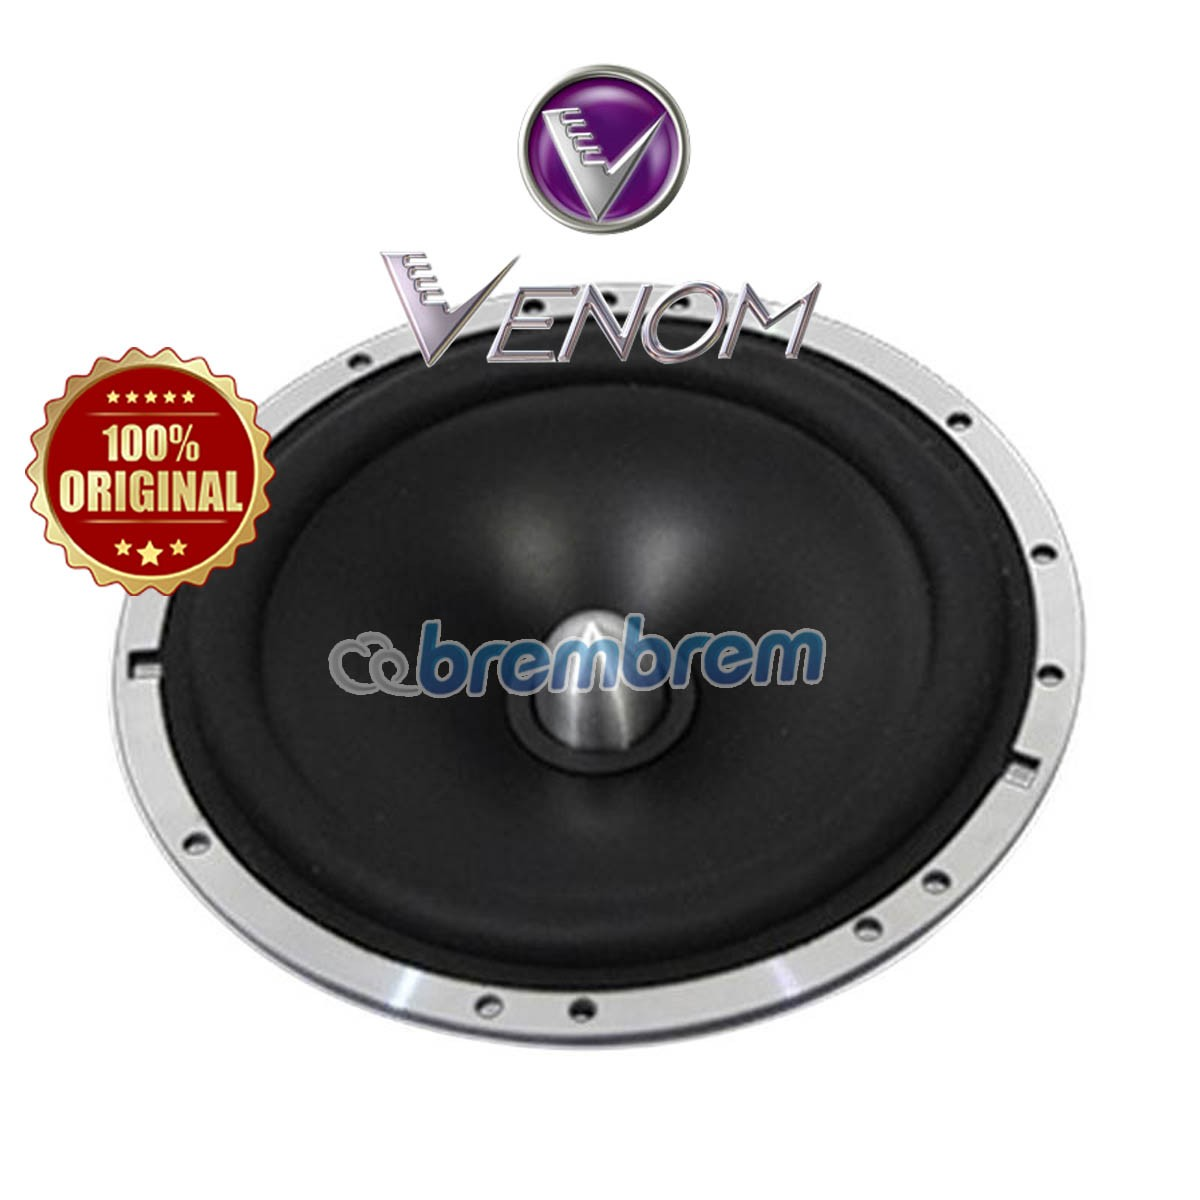 VENOM PURPLE STROM SERIES PS 6 - SPEAKER 2 WAY